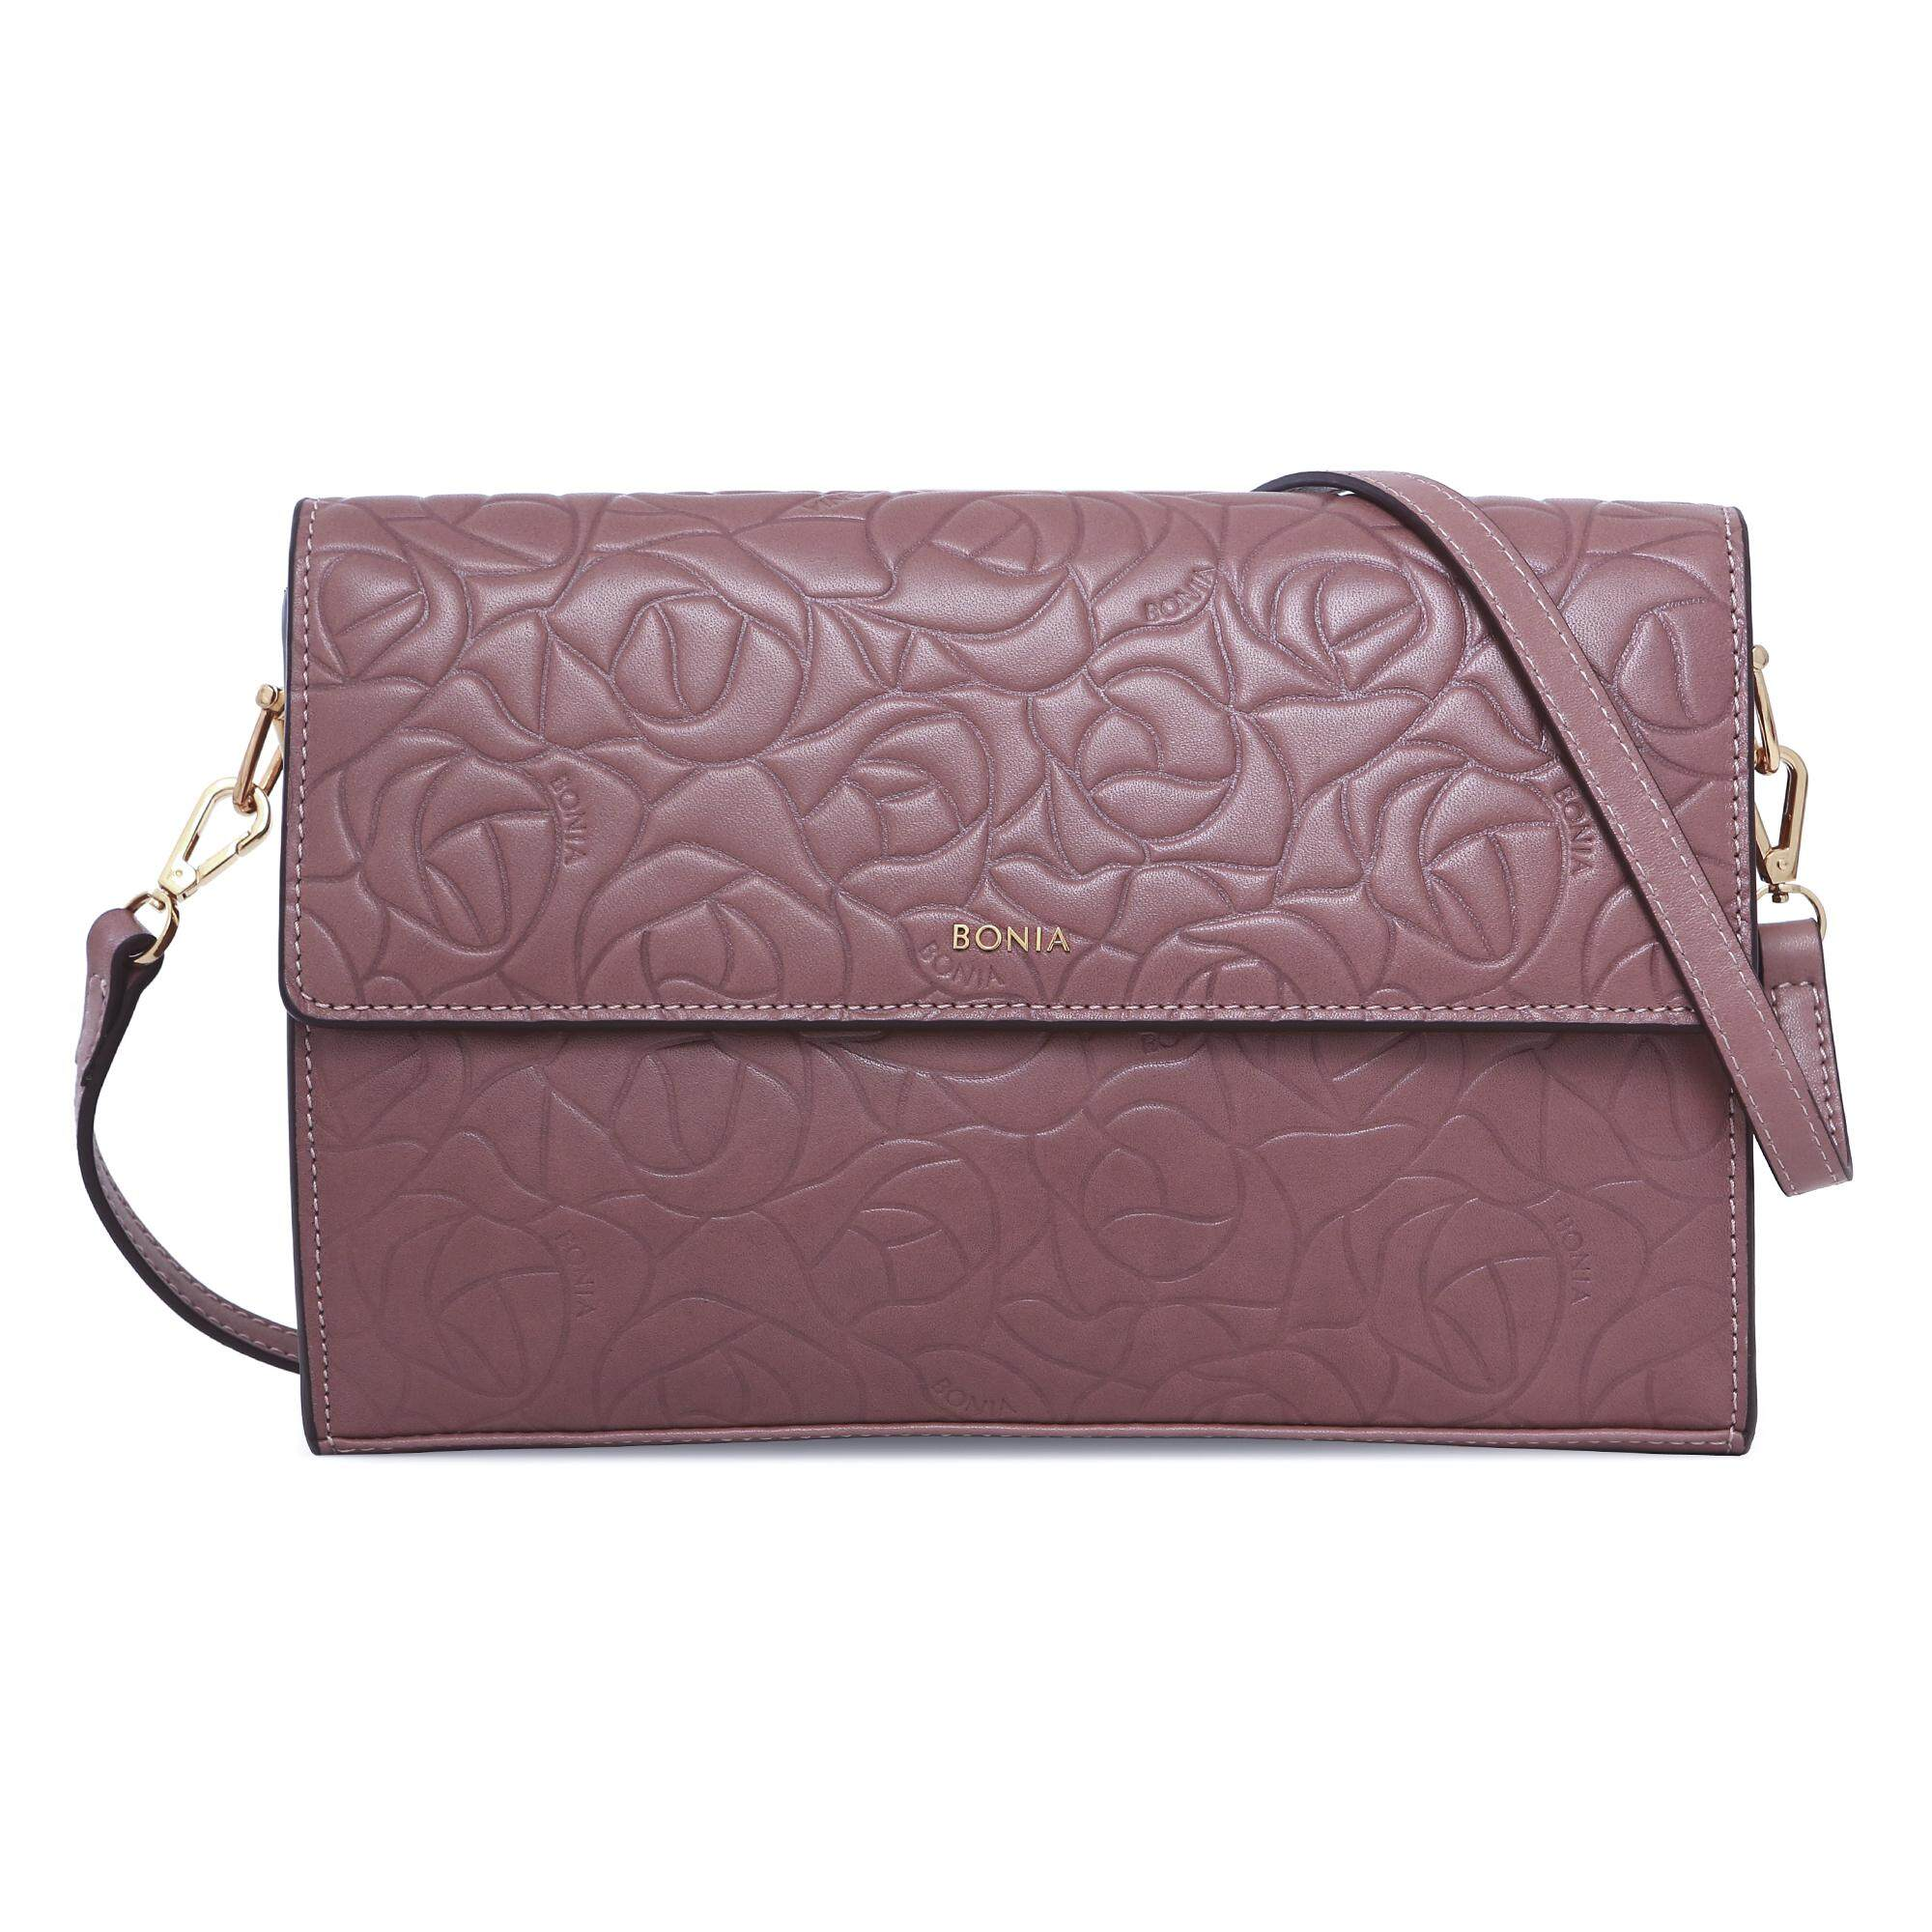 Bonia Orchid Regal Rose Clutch